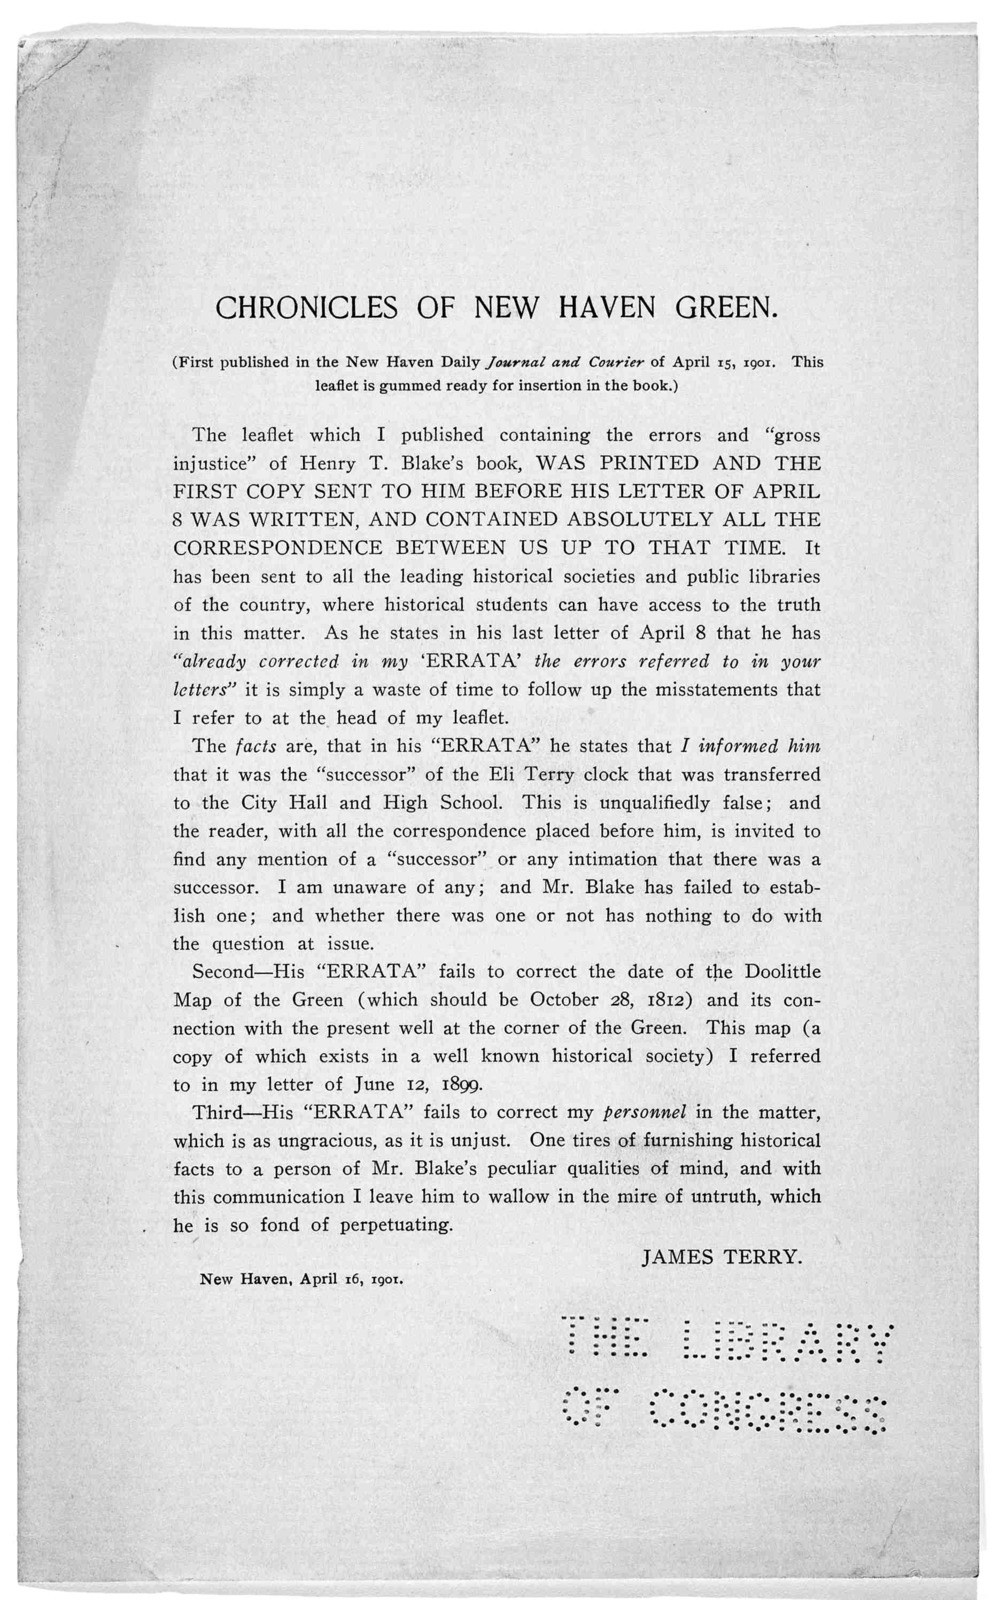 Chronicles of New Haven green (First published in the New Haven Daily journal and Courier of April 15, 1901. This leaflet is gummed ready for insertion in the book.) ... James Terry. New Haven. April 16, 1901.